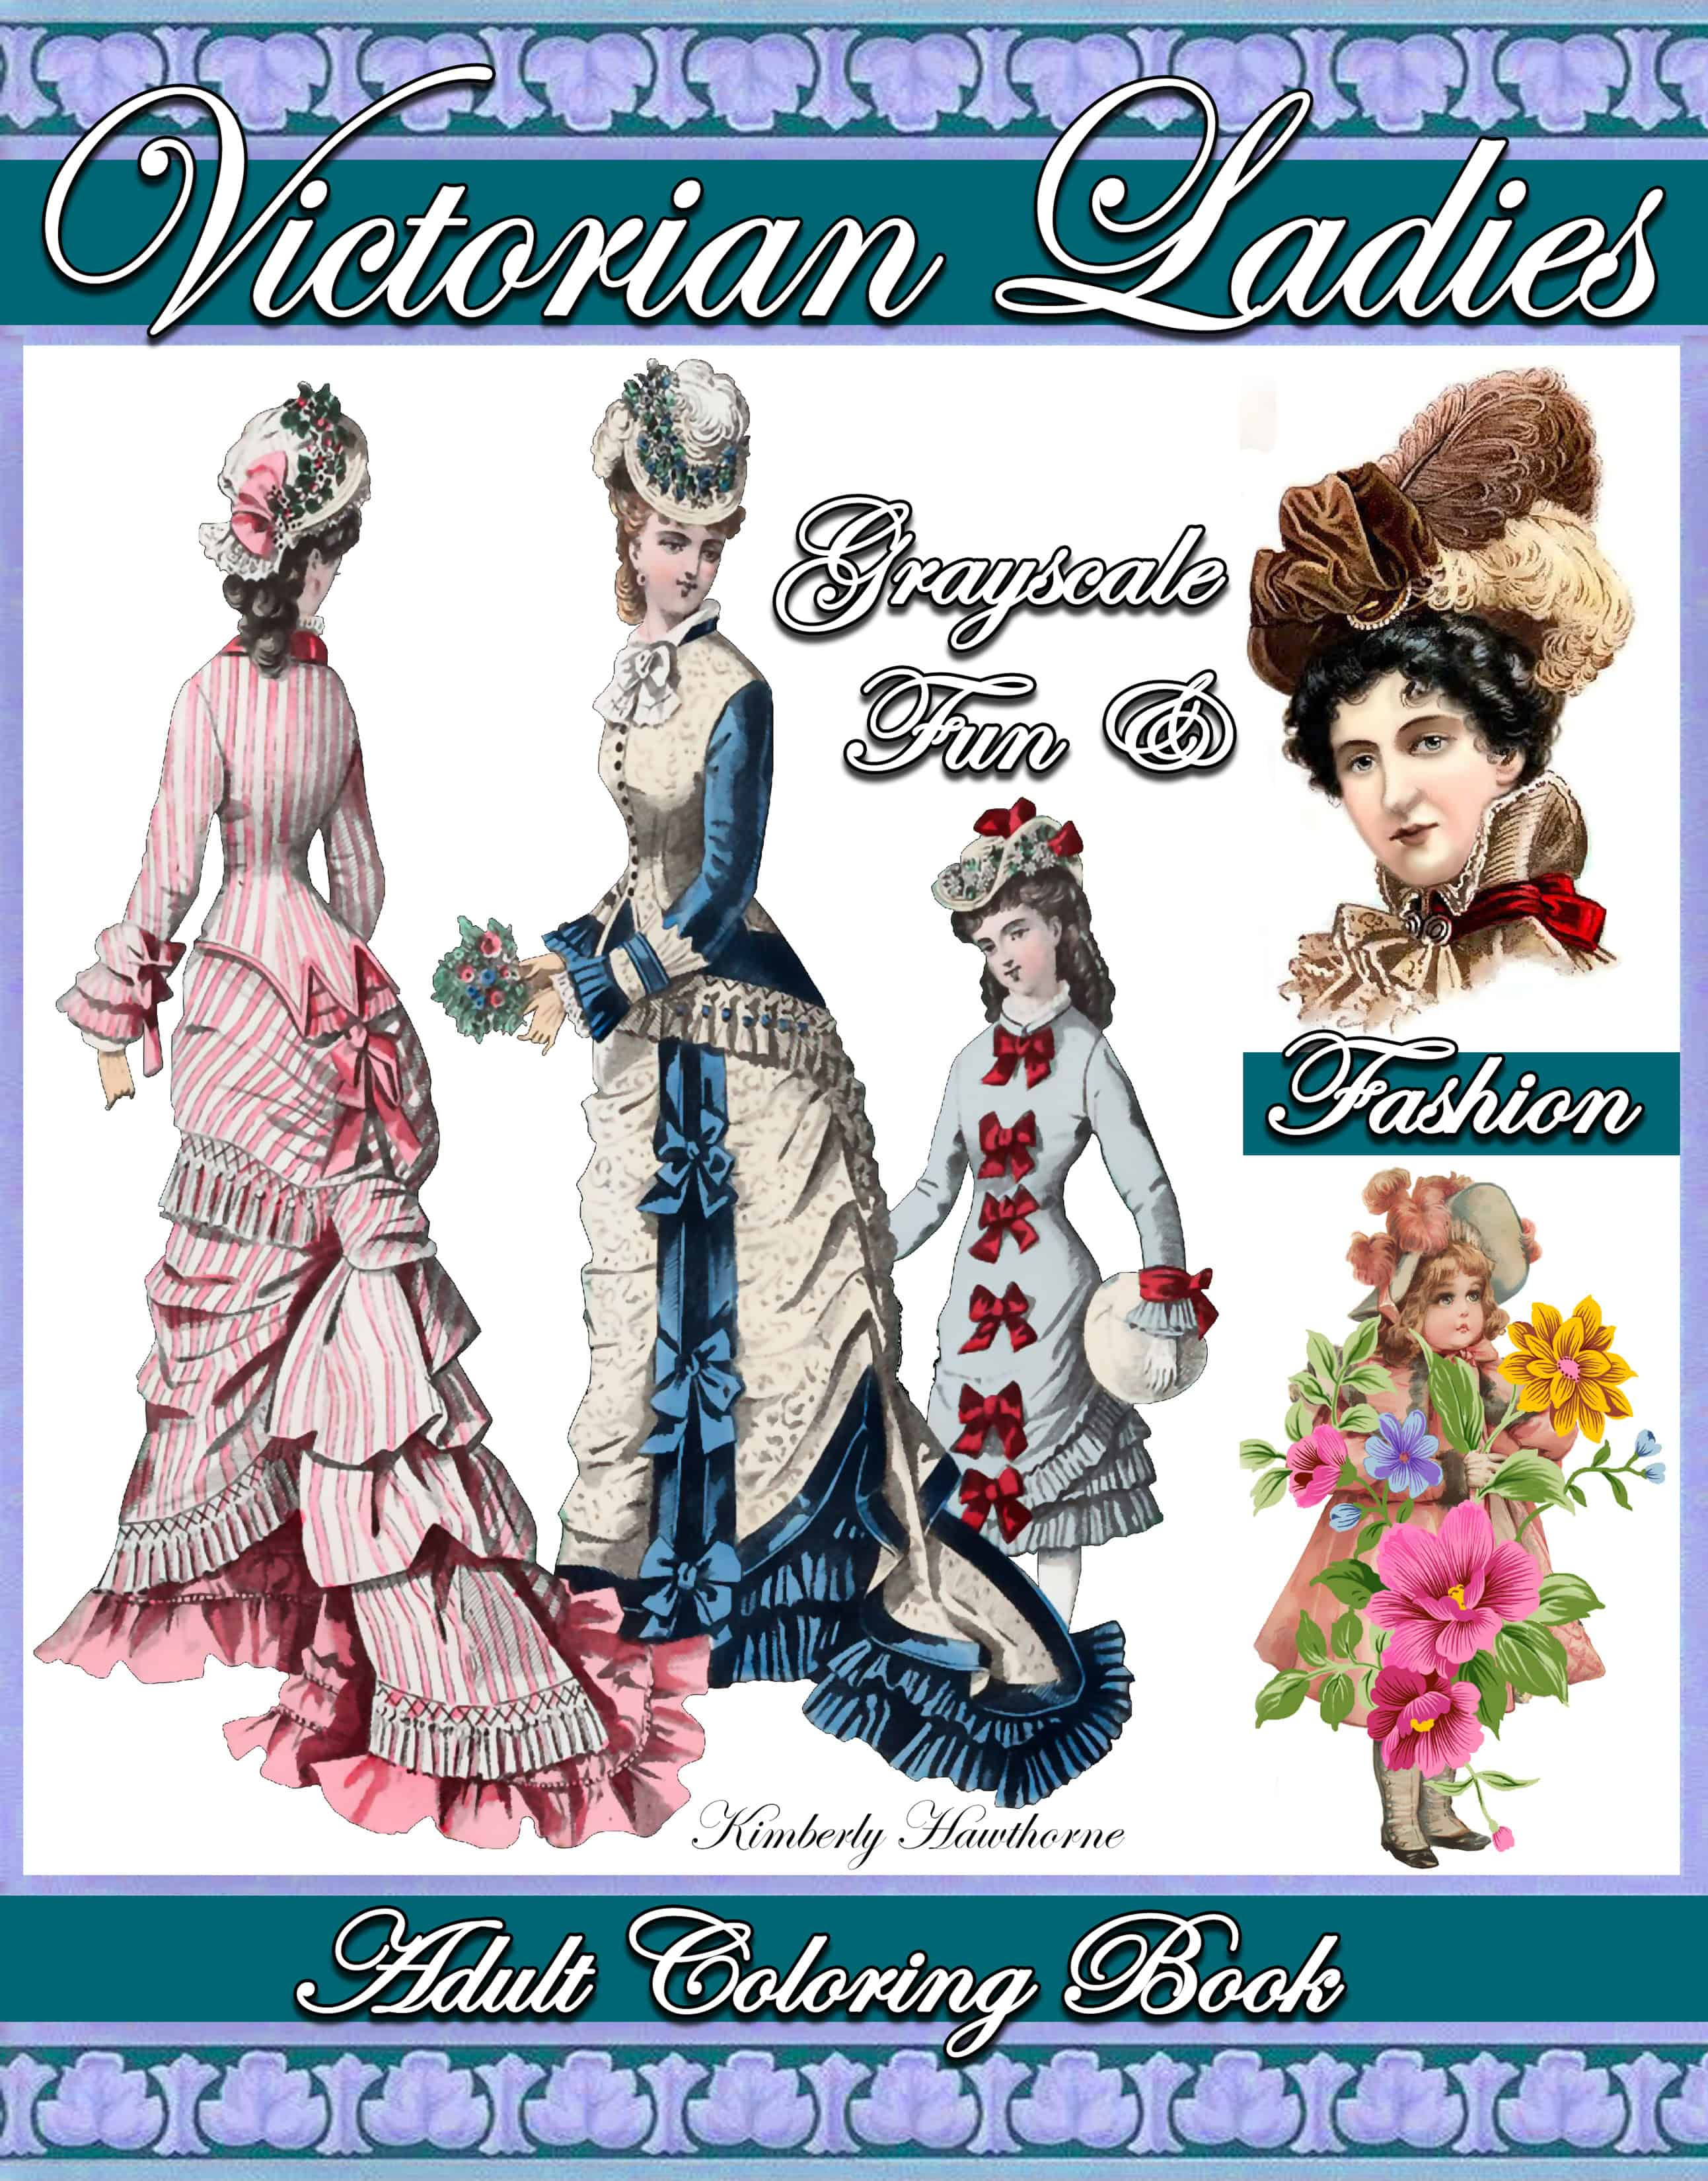 Victorian Ladies Fun Fashion Grayscale Adult Coloring Book